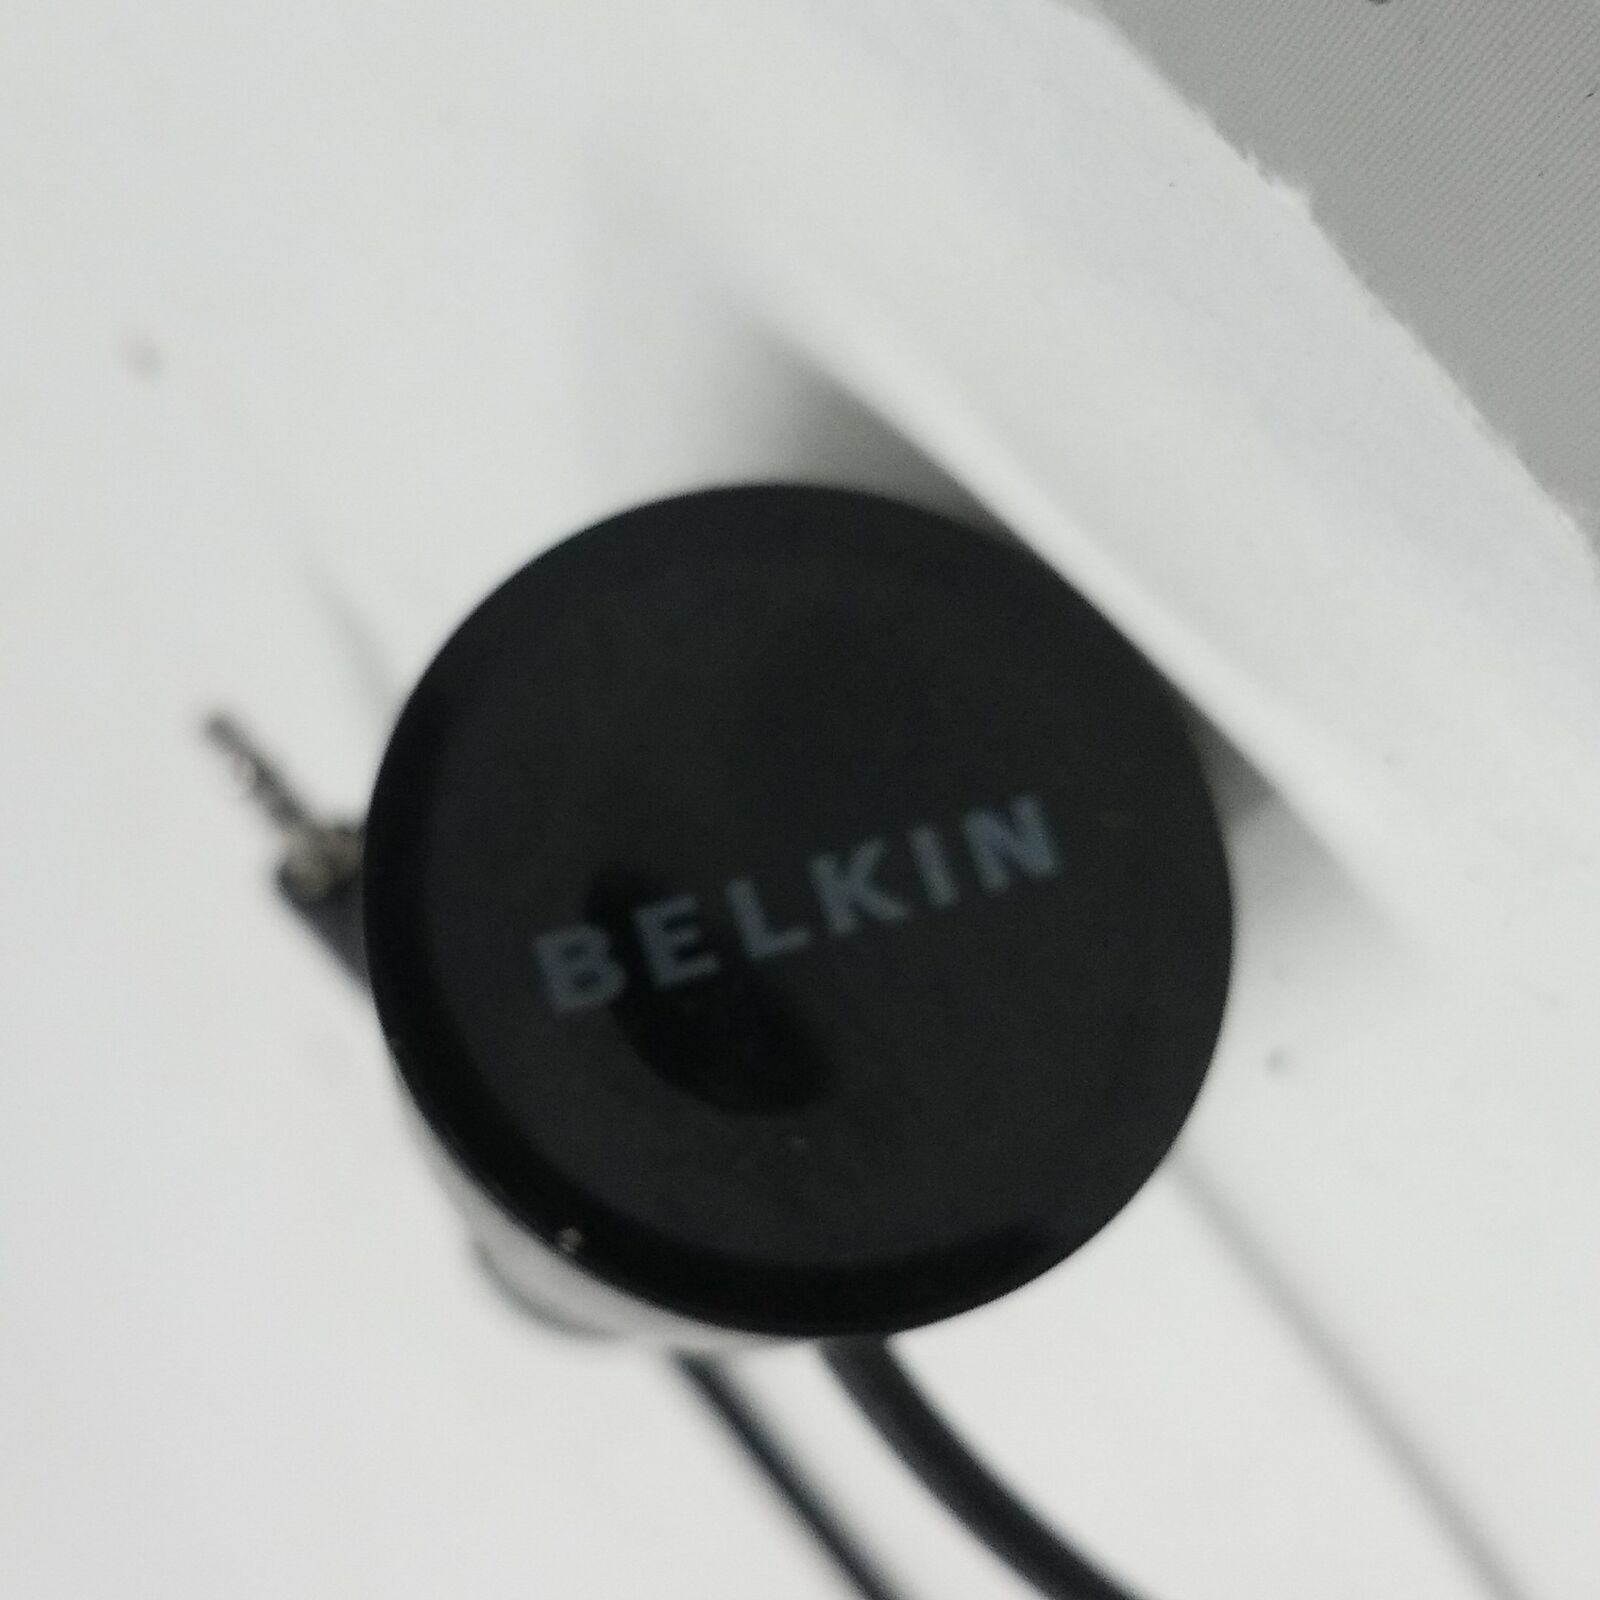 Belkin TuneCast Auto Power Adapter and 50 similar items